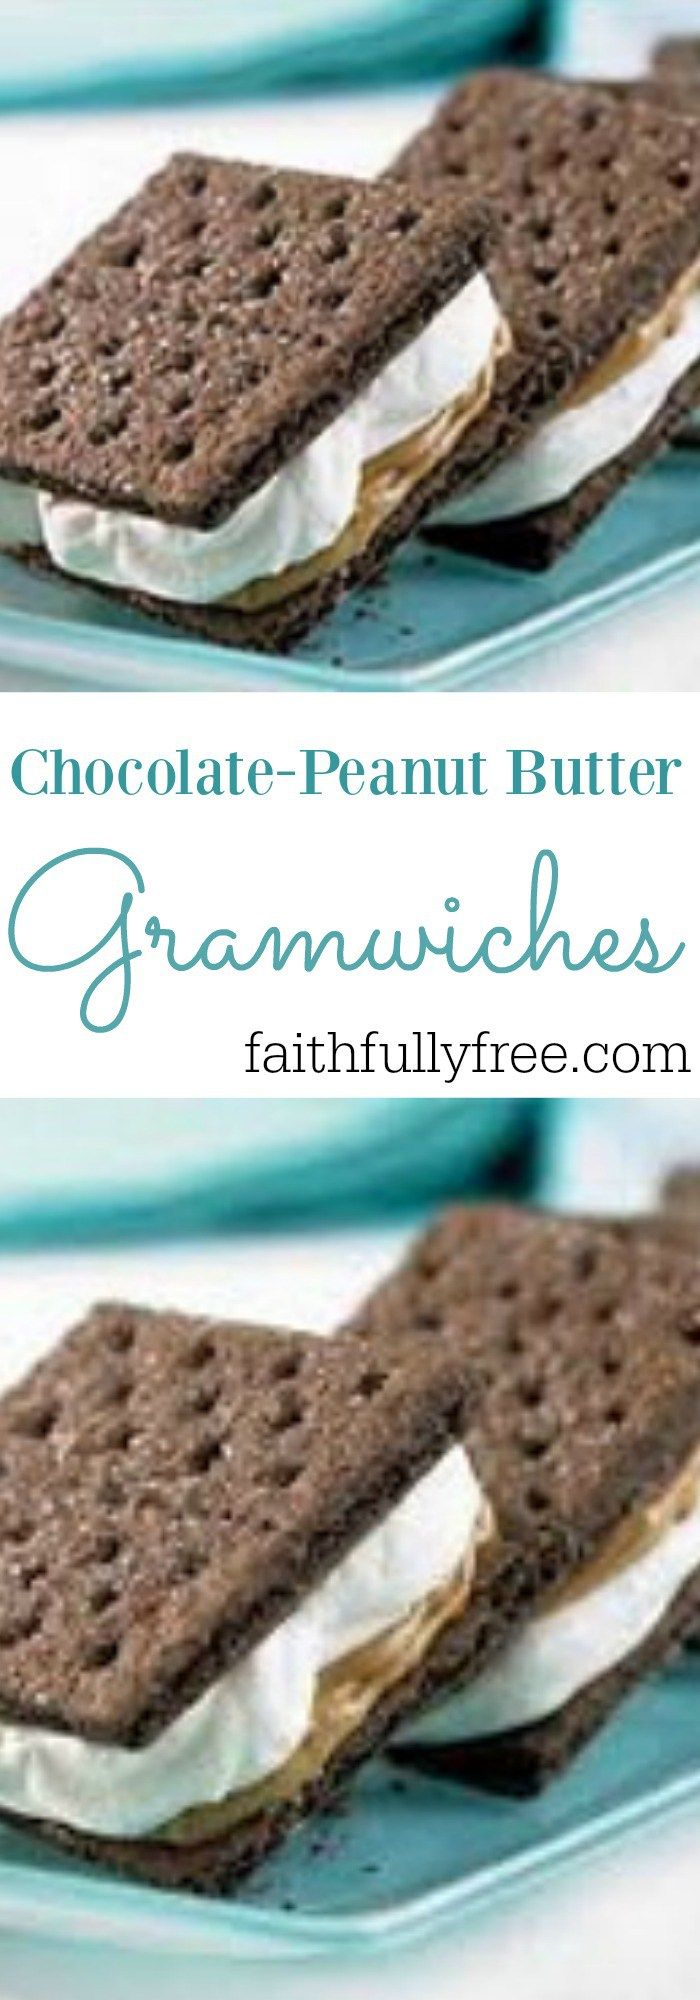 Biggest Loser Chocolate Peanut Butter Gramwiches                                                                                                                                                                                 More